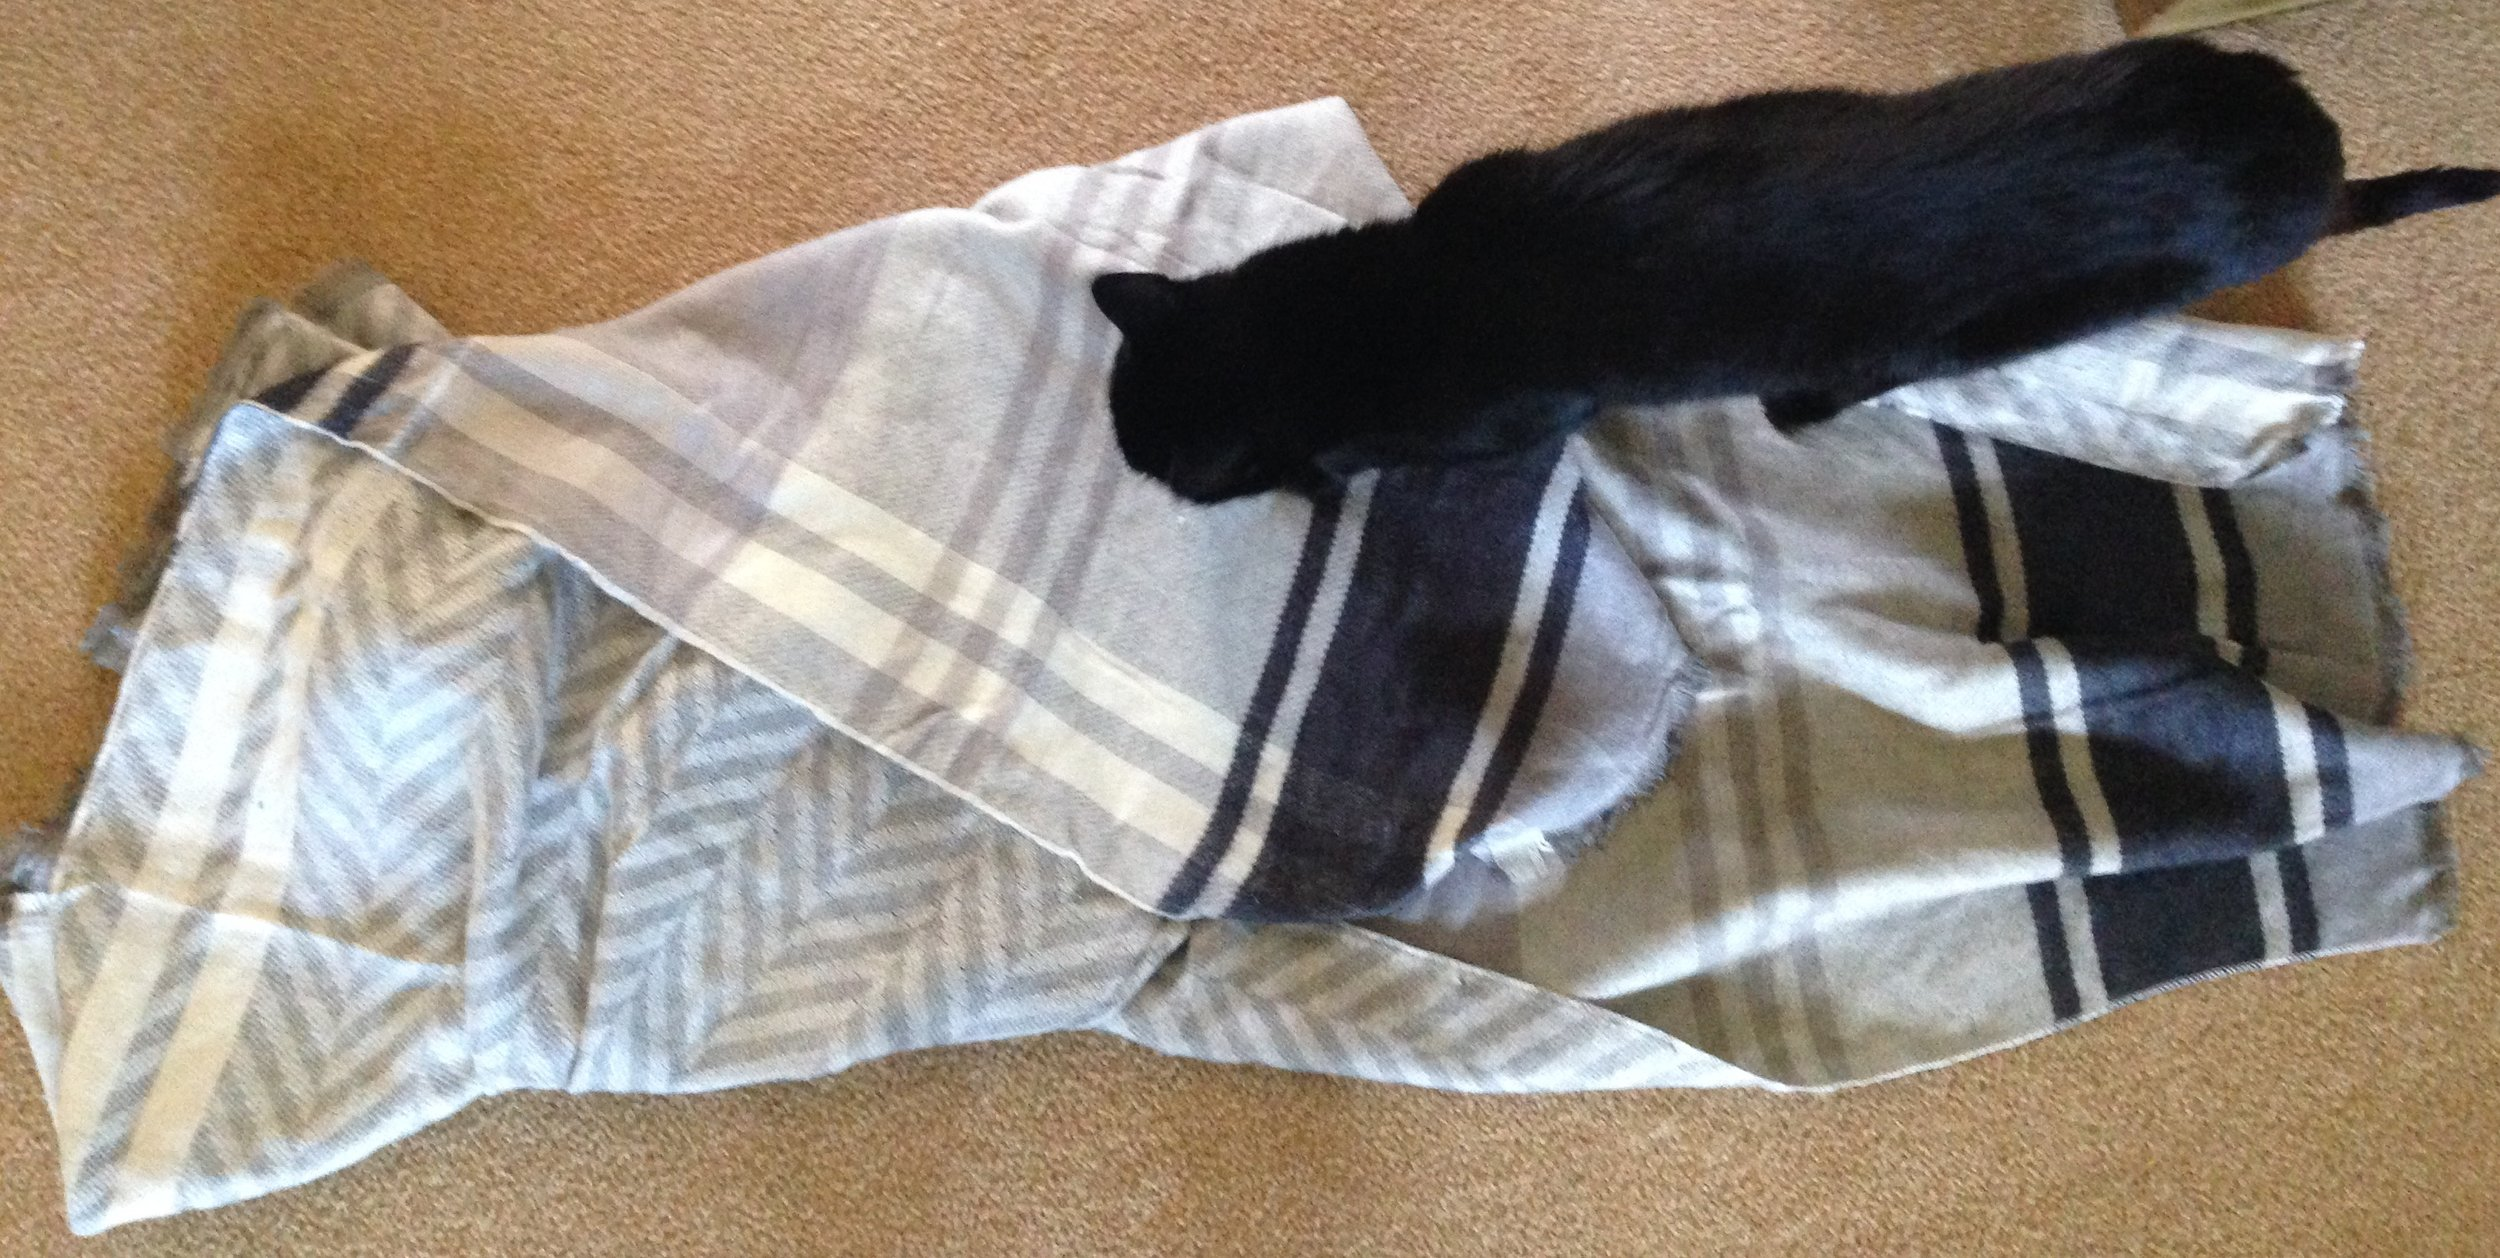 Showing the plaid and chevron sides of the scarf/poncho with a Blaze walking across. Cats love getting in the way.